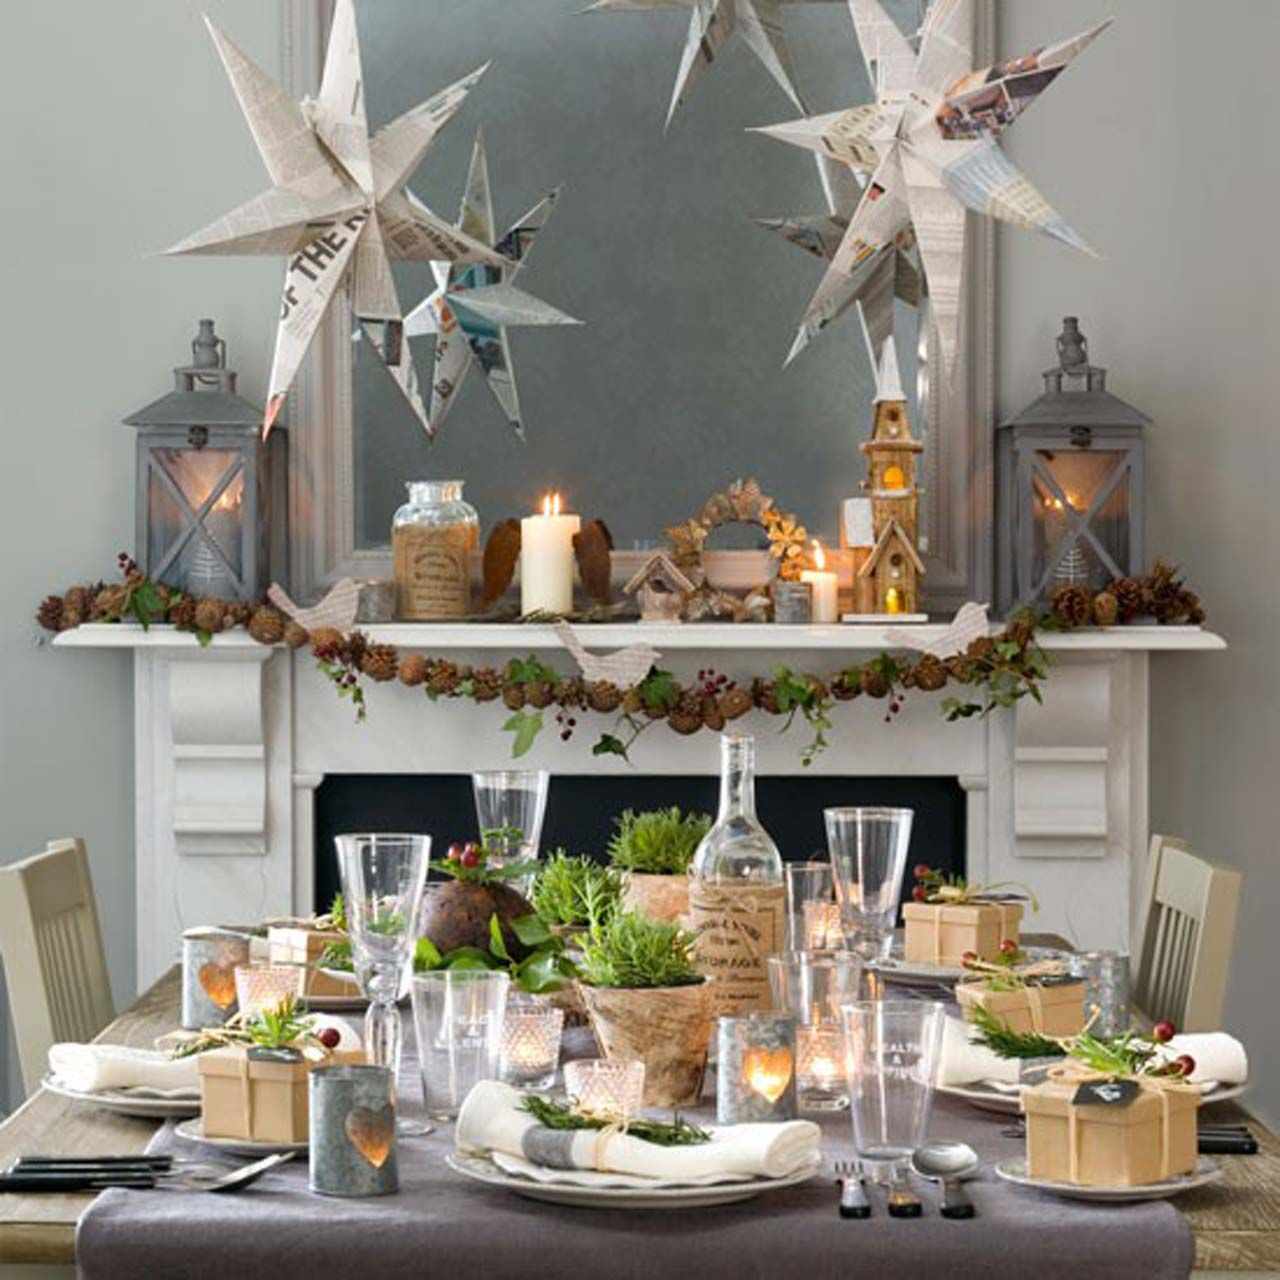 Christmas decorating Design ideas ~ http://www.lookmyhomes.com/budget-christmas-decorating-ideas/